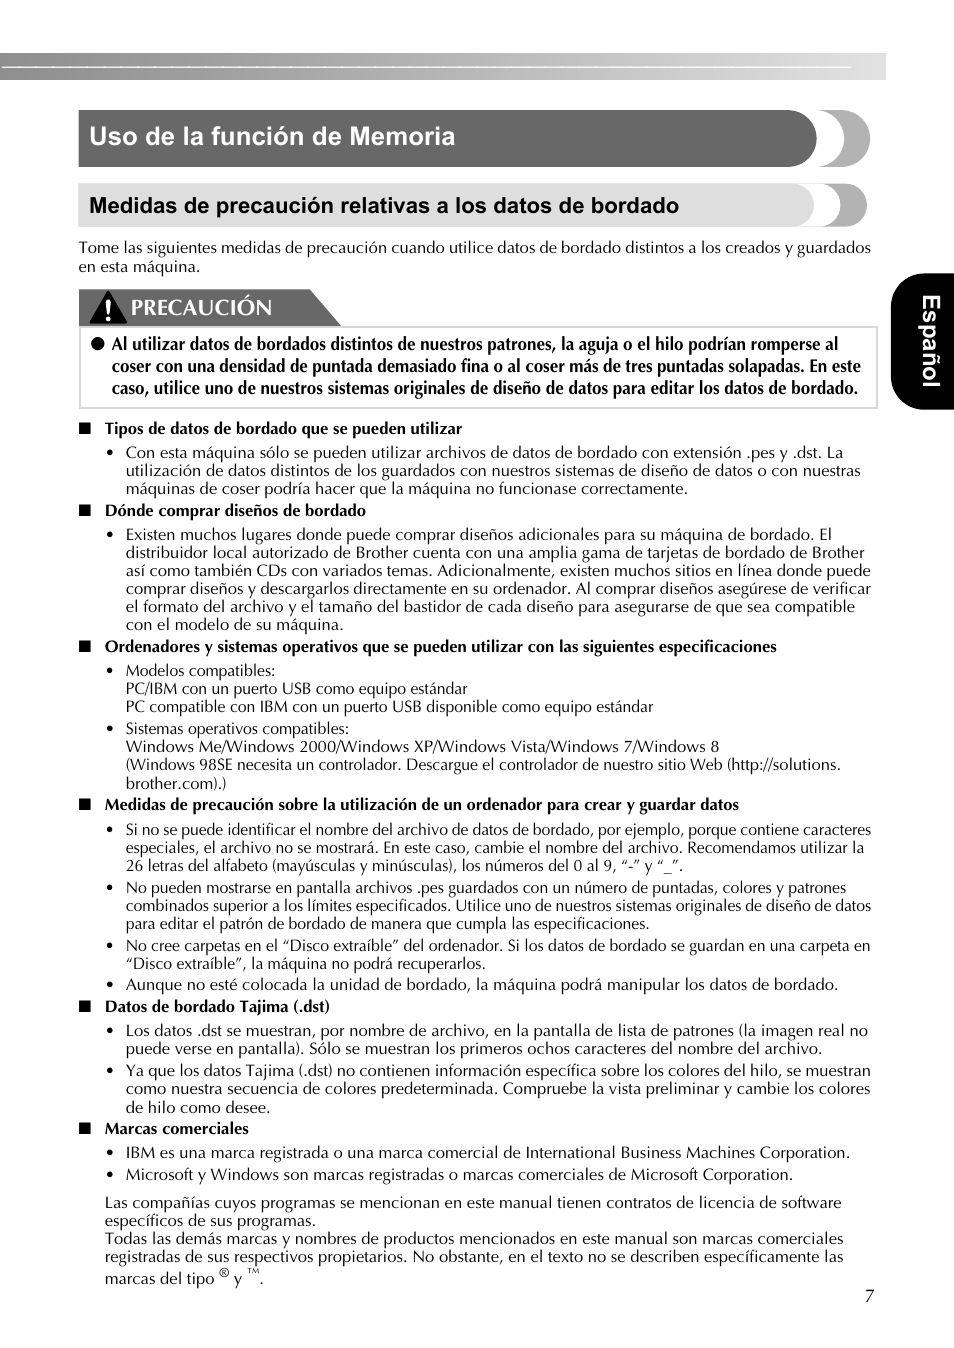 Español, Precaución | Brother SE-400 User Manual | Page 9 / 16